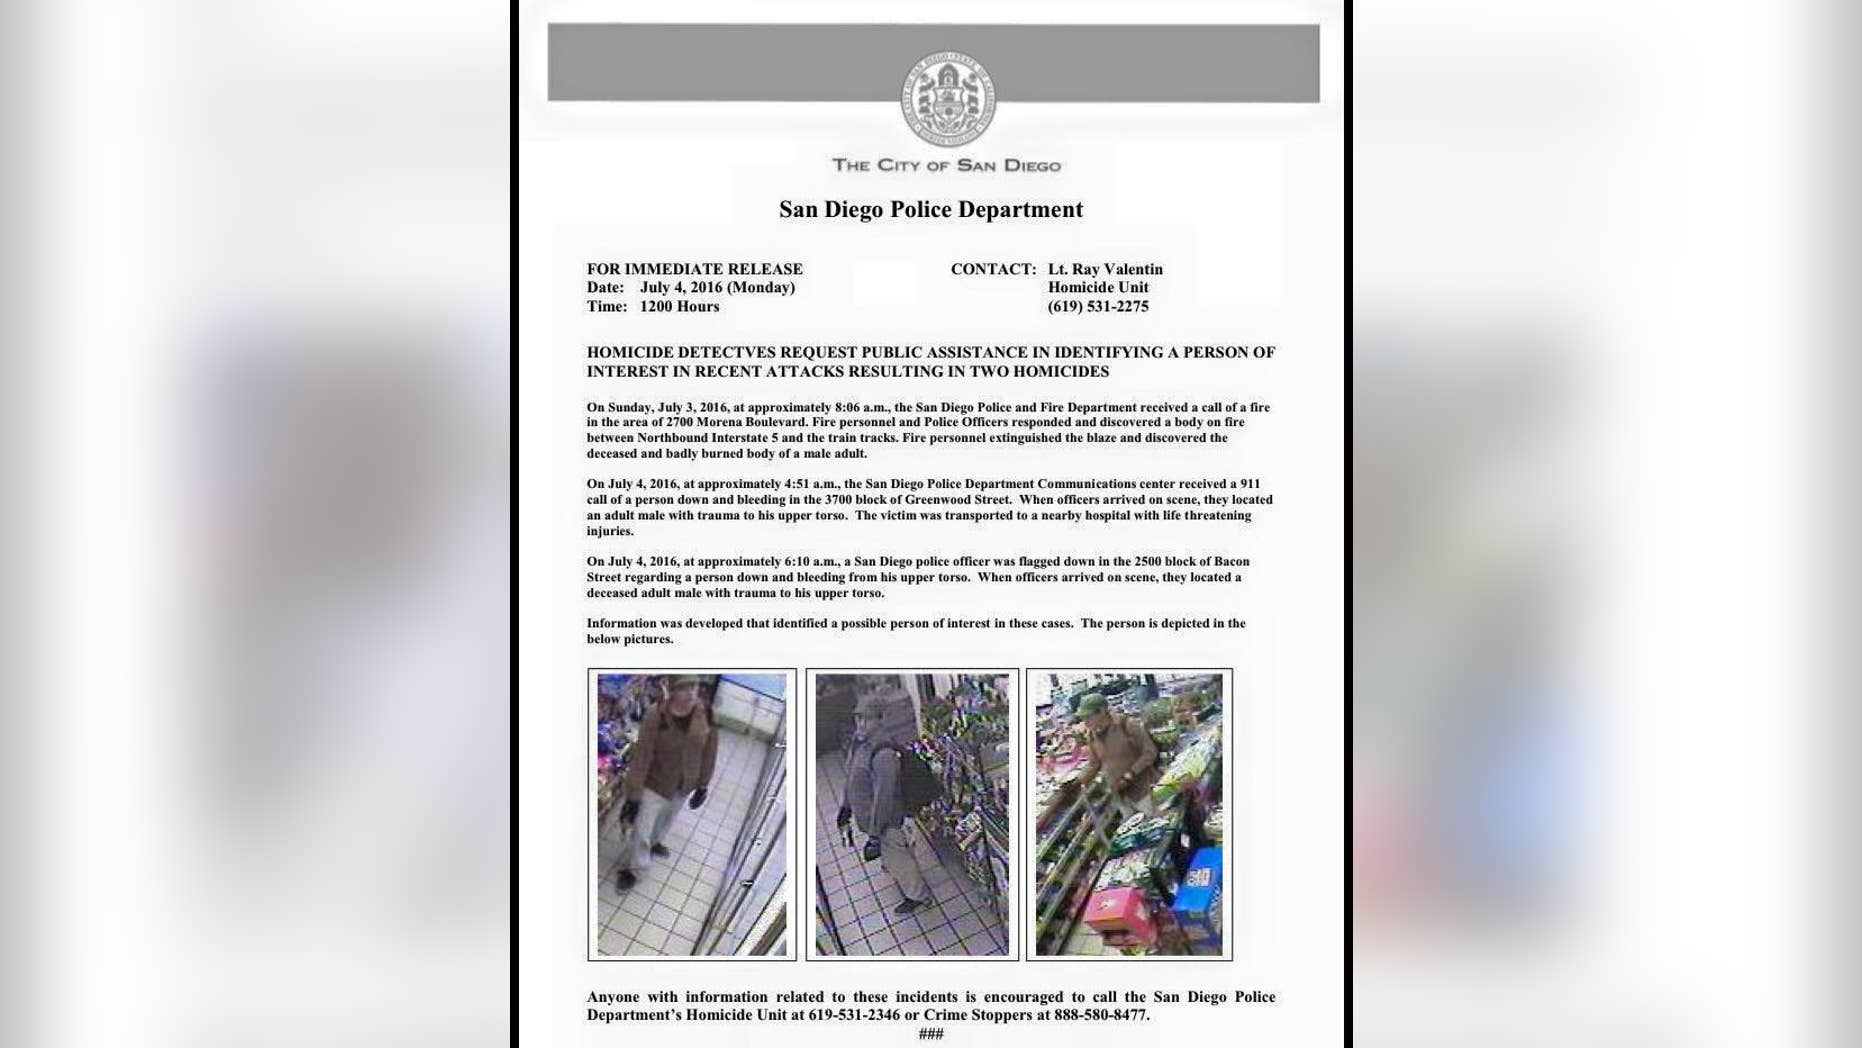 San Diego Police are searching for a man in connection with attacks on several homeless individuals.